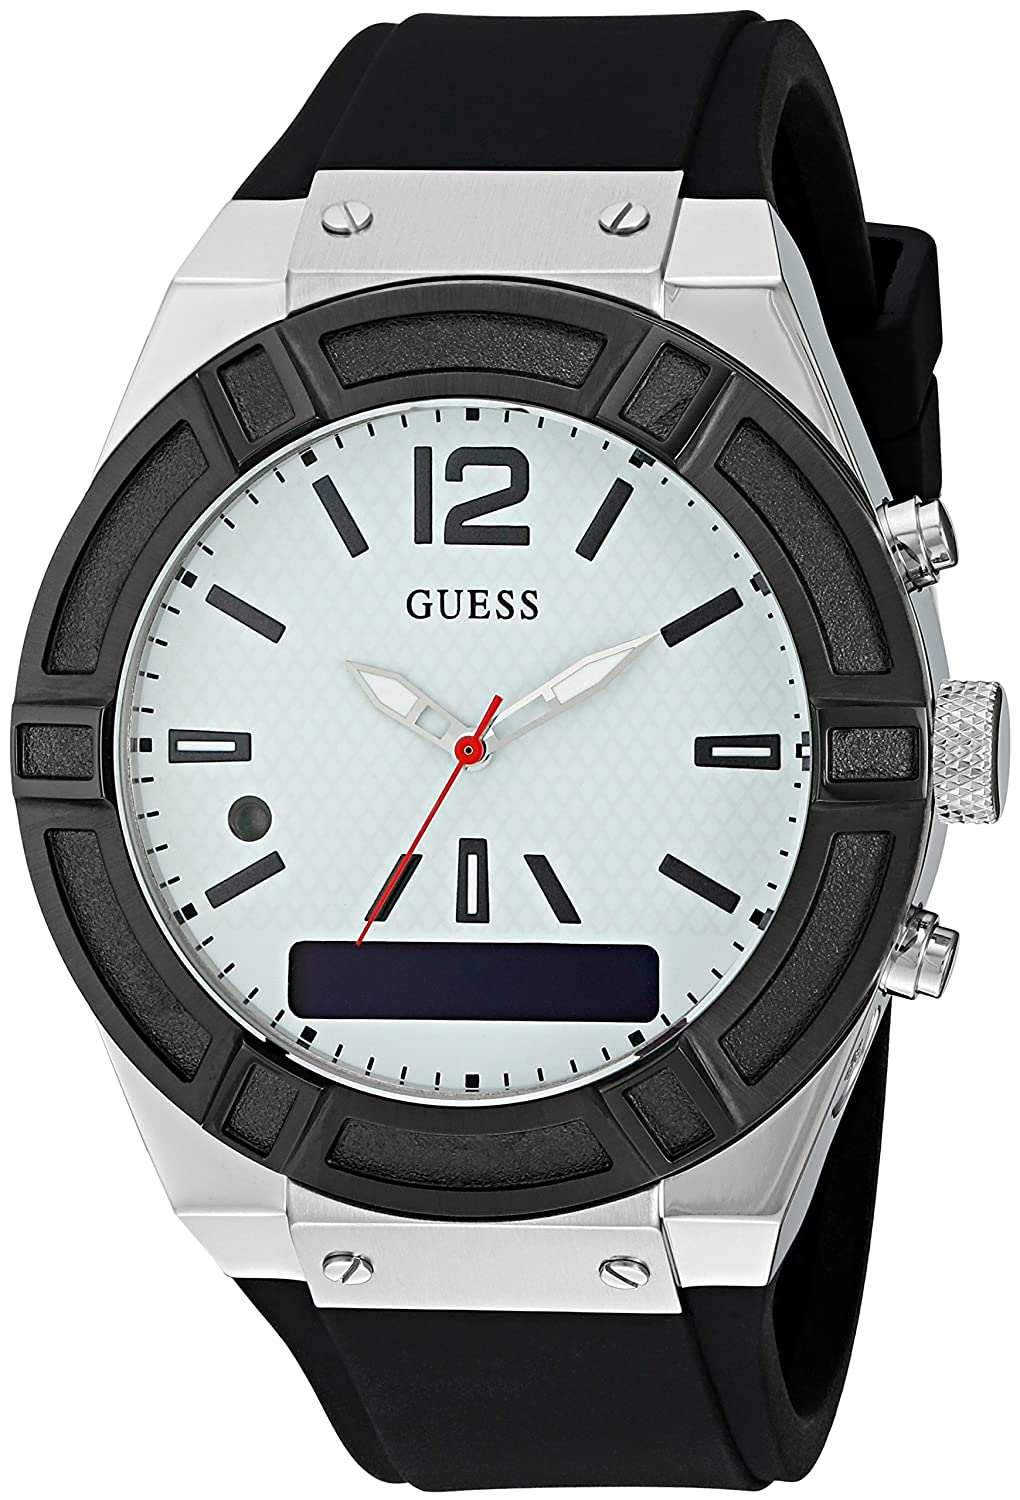 GUESS Womens CONNECT Smartwatch with Amazon Alexa and Silicone Strap Buckle - iOS and Android Compatible - Silver